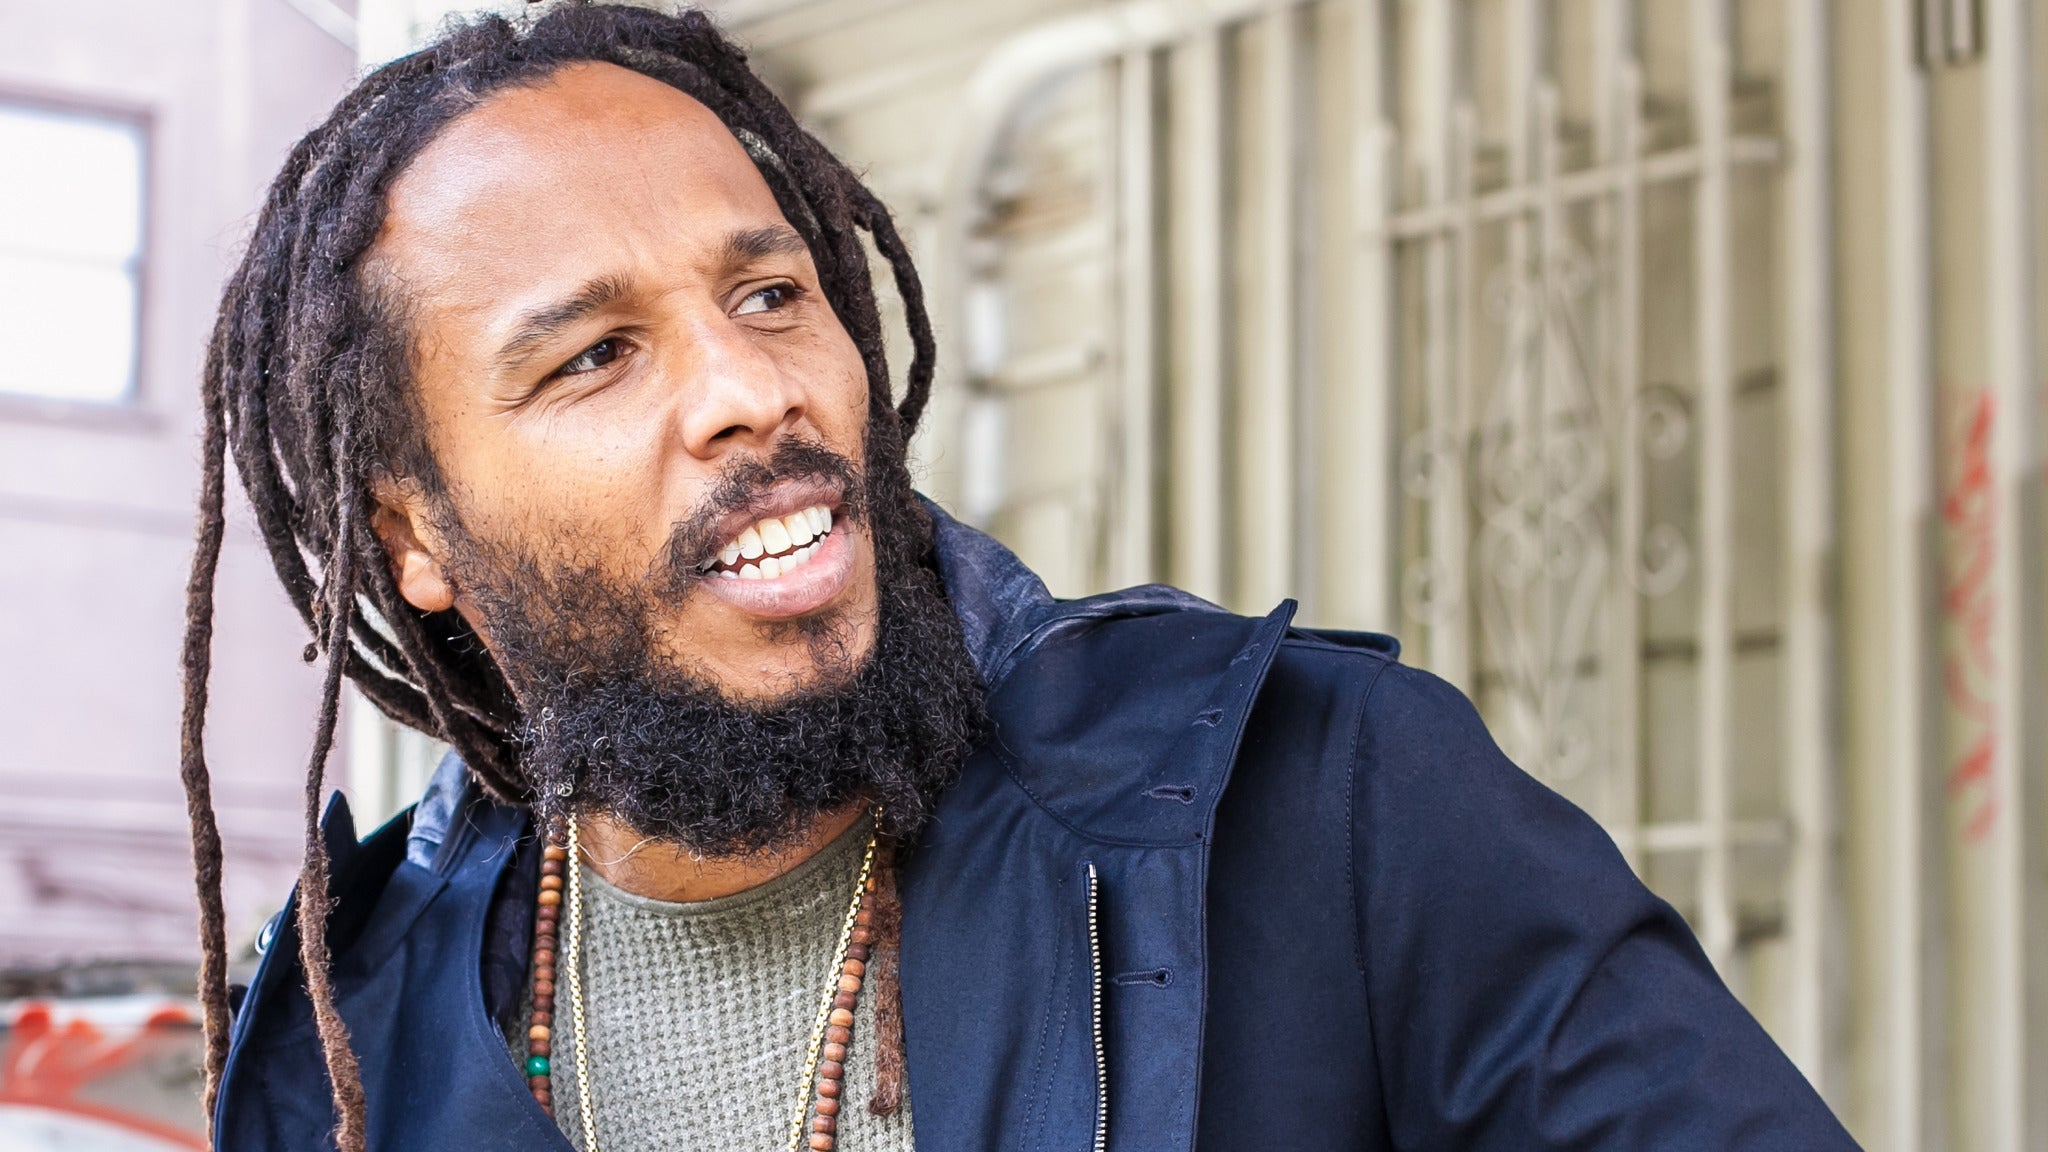 ZIGGY MARLEY - Rebellion Rises 2018 Tour at The Van Buren